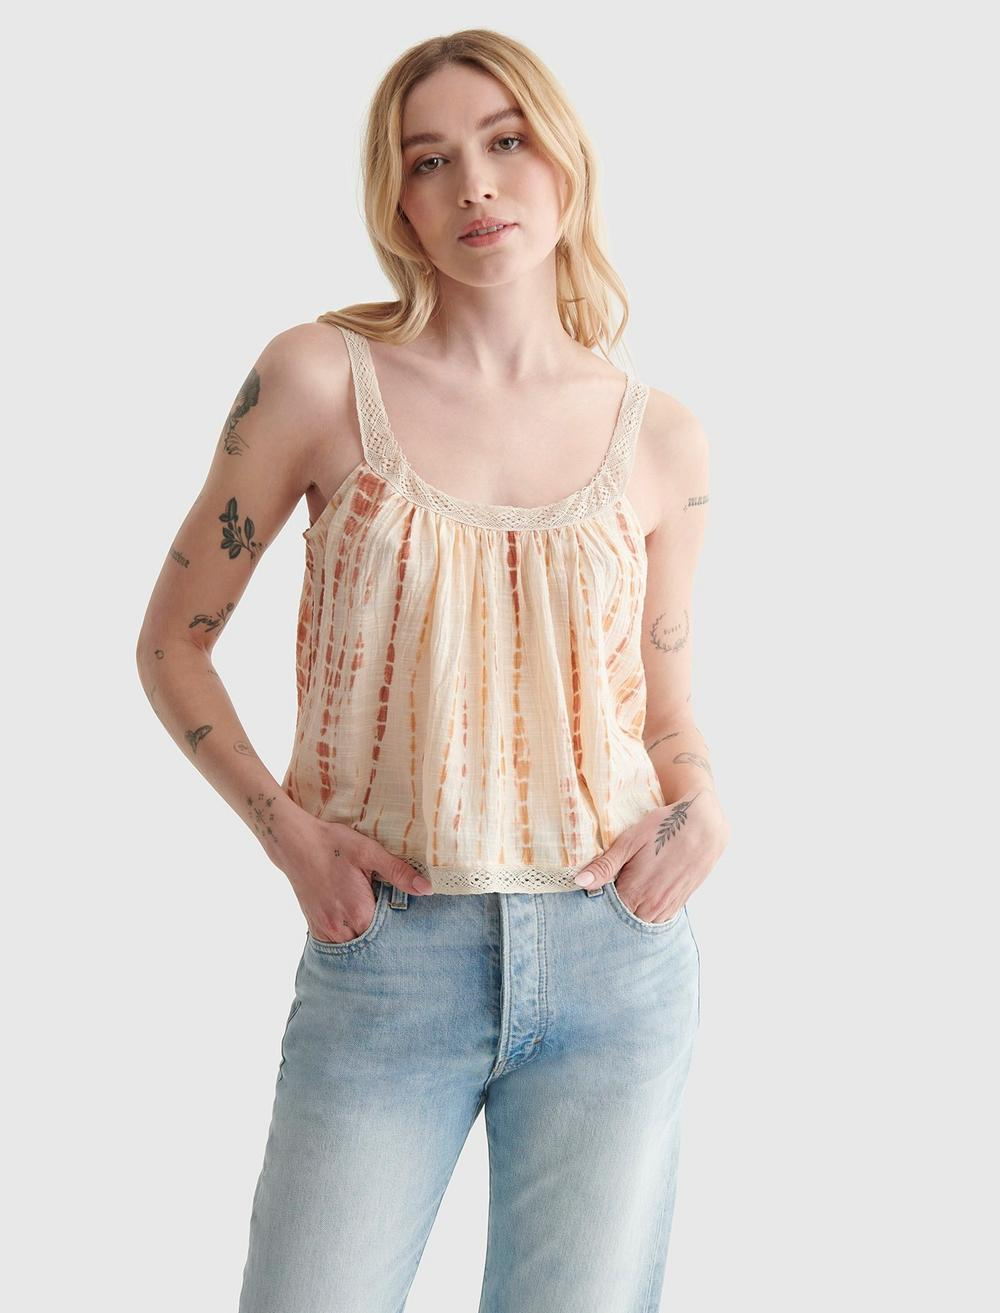 WOVEN SWING CAMI, image 1